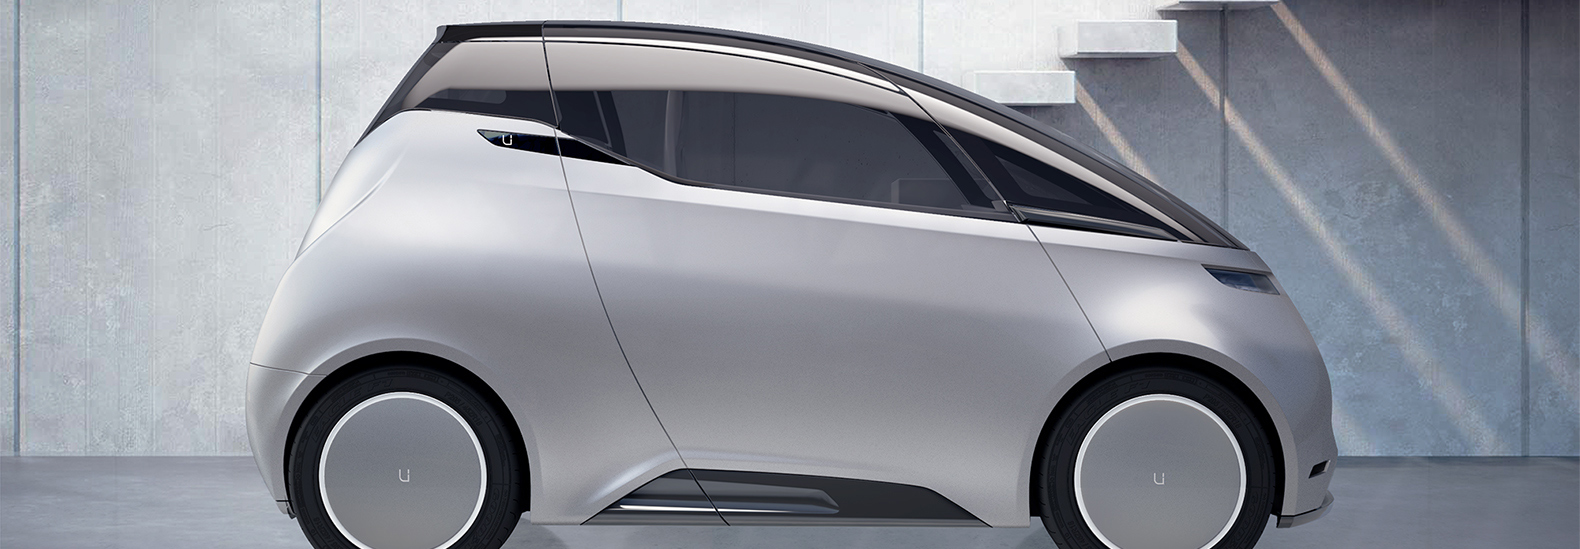 This Swedish electric car comes with 5 years of free electricity ...